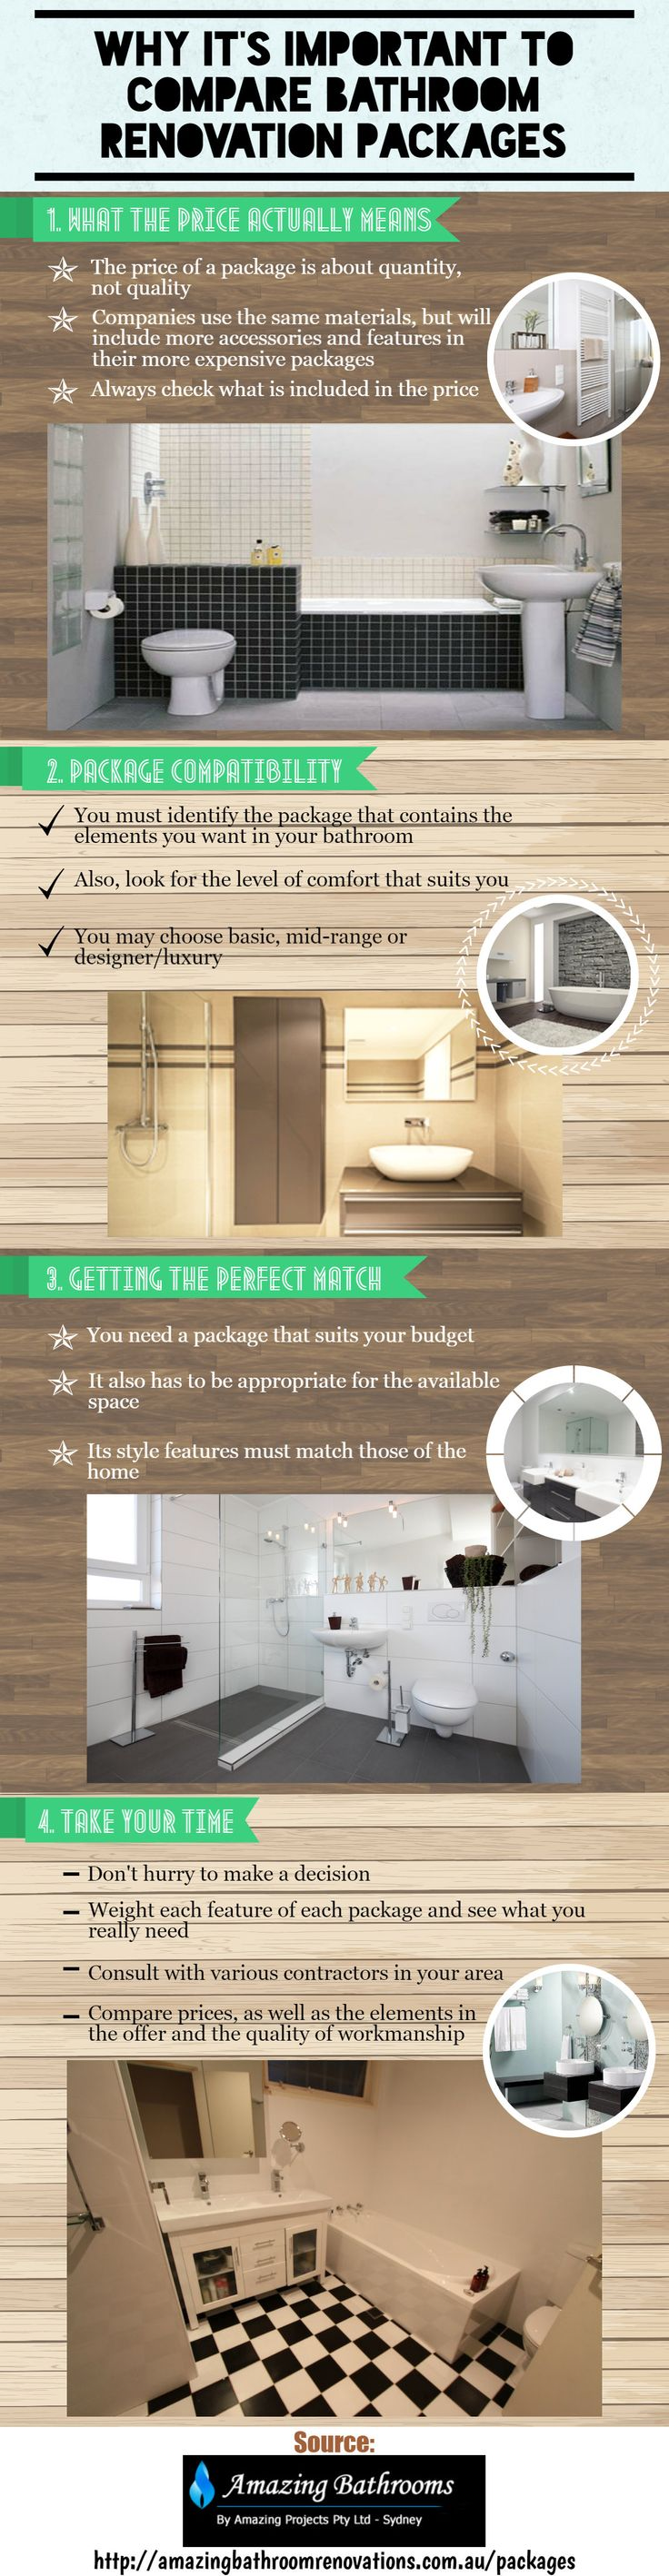 In fact, with modern day tools and a few smart ideas you can cut back on your remodeling time majorly. You can also ensure that your Bathroom Renovations Sydney (http://amazingbathroomrenovations.com.au/) project has a better finish at the end of all your efforts.